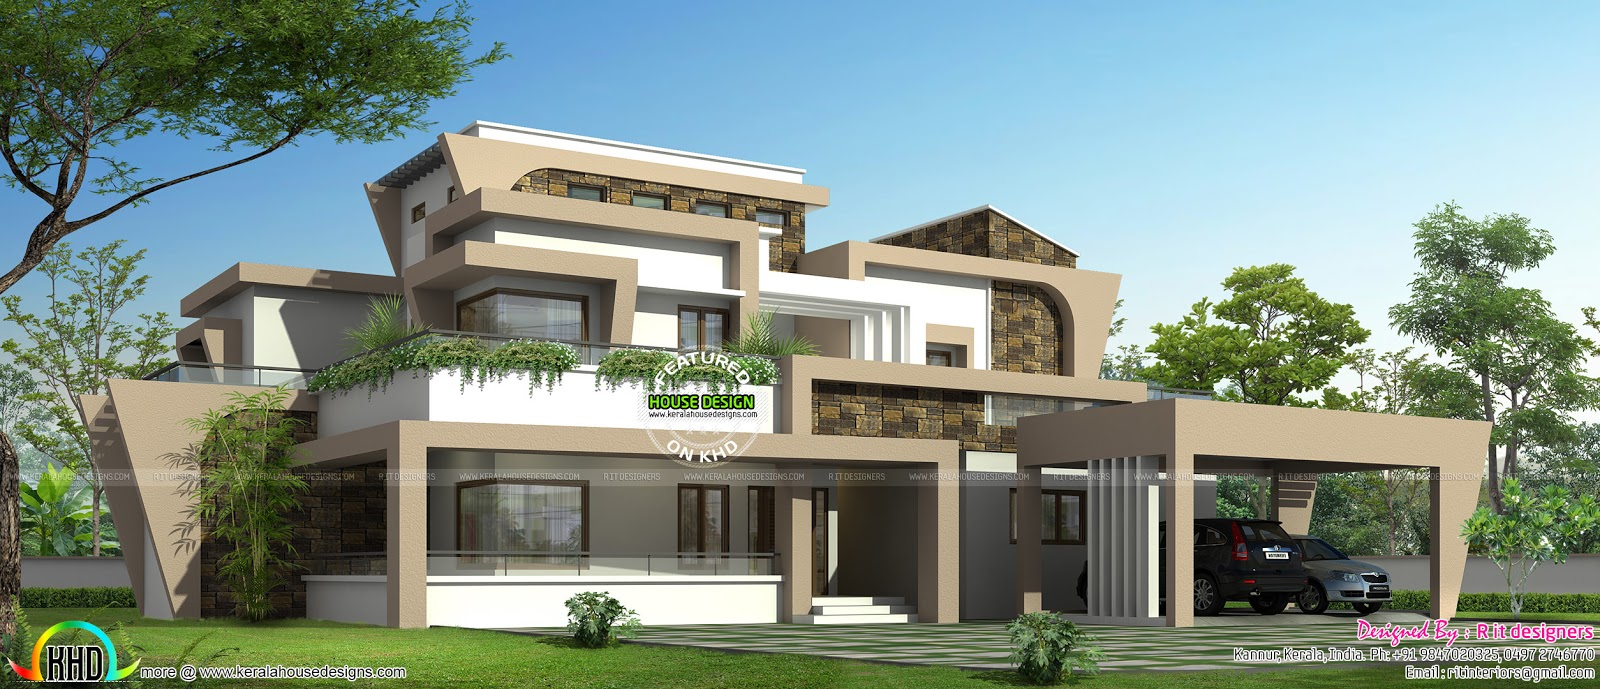 Unique modern home design in kerala kerala home design for Unique house designs